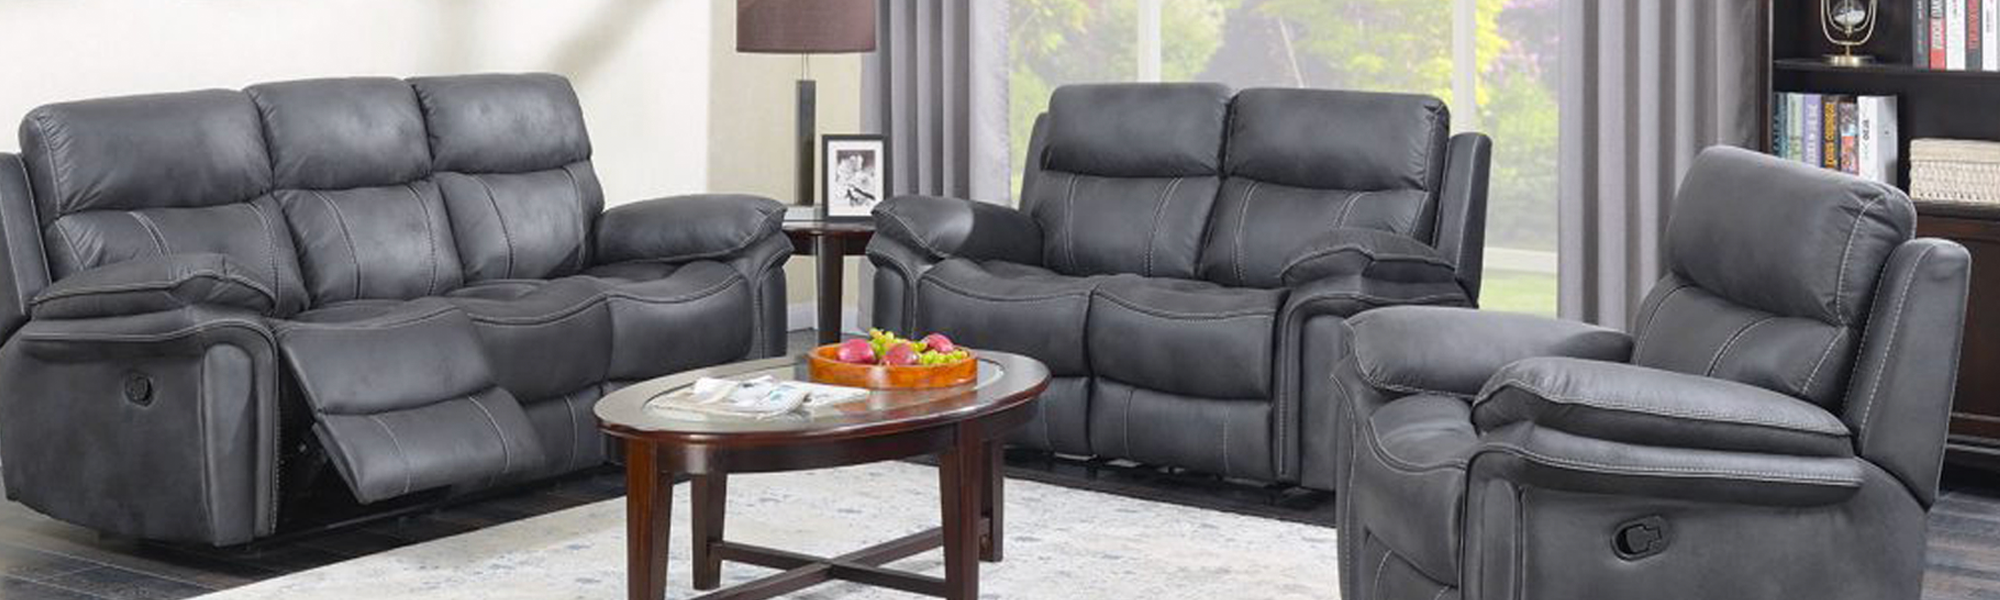 2 Seater Fabric Manual Recliners